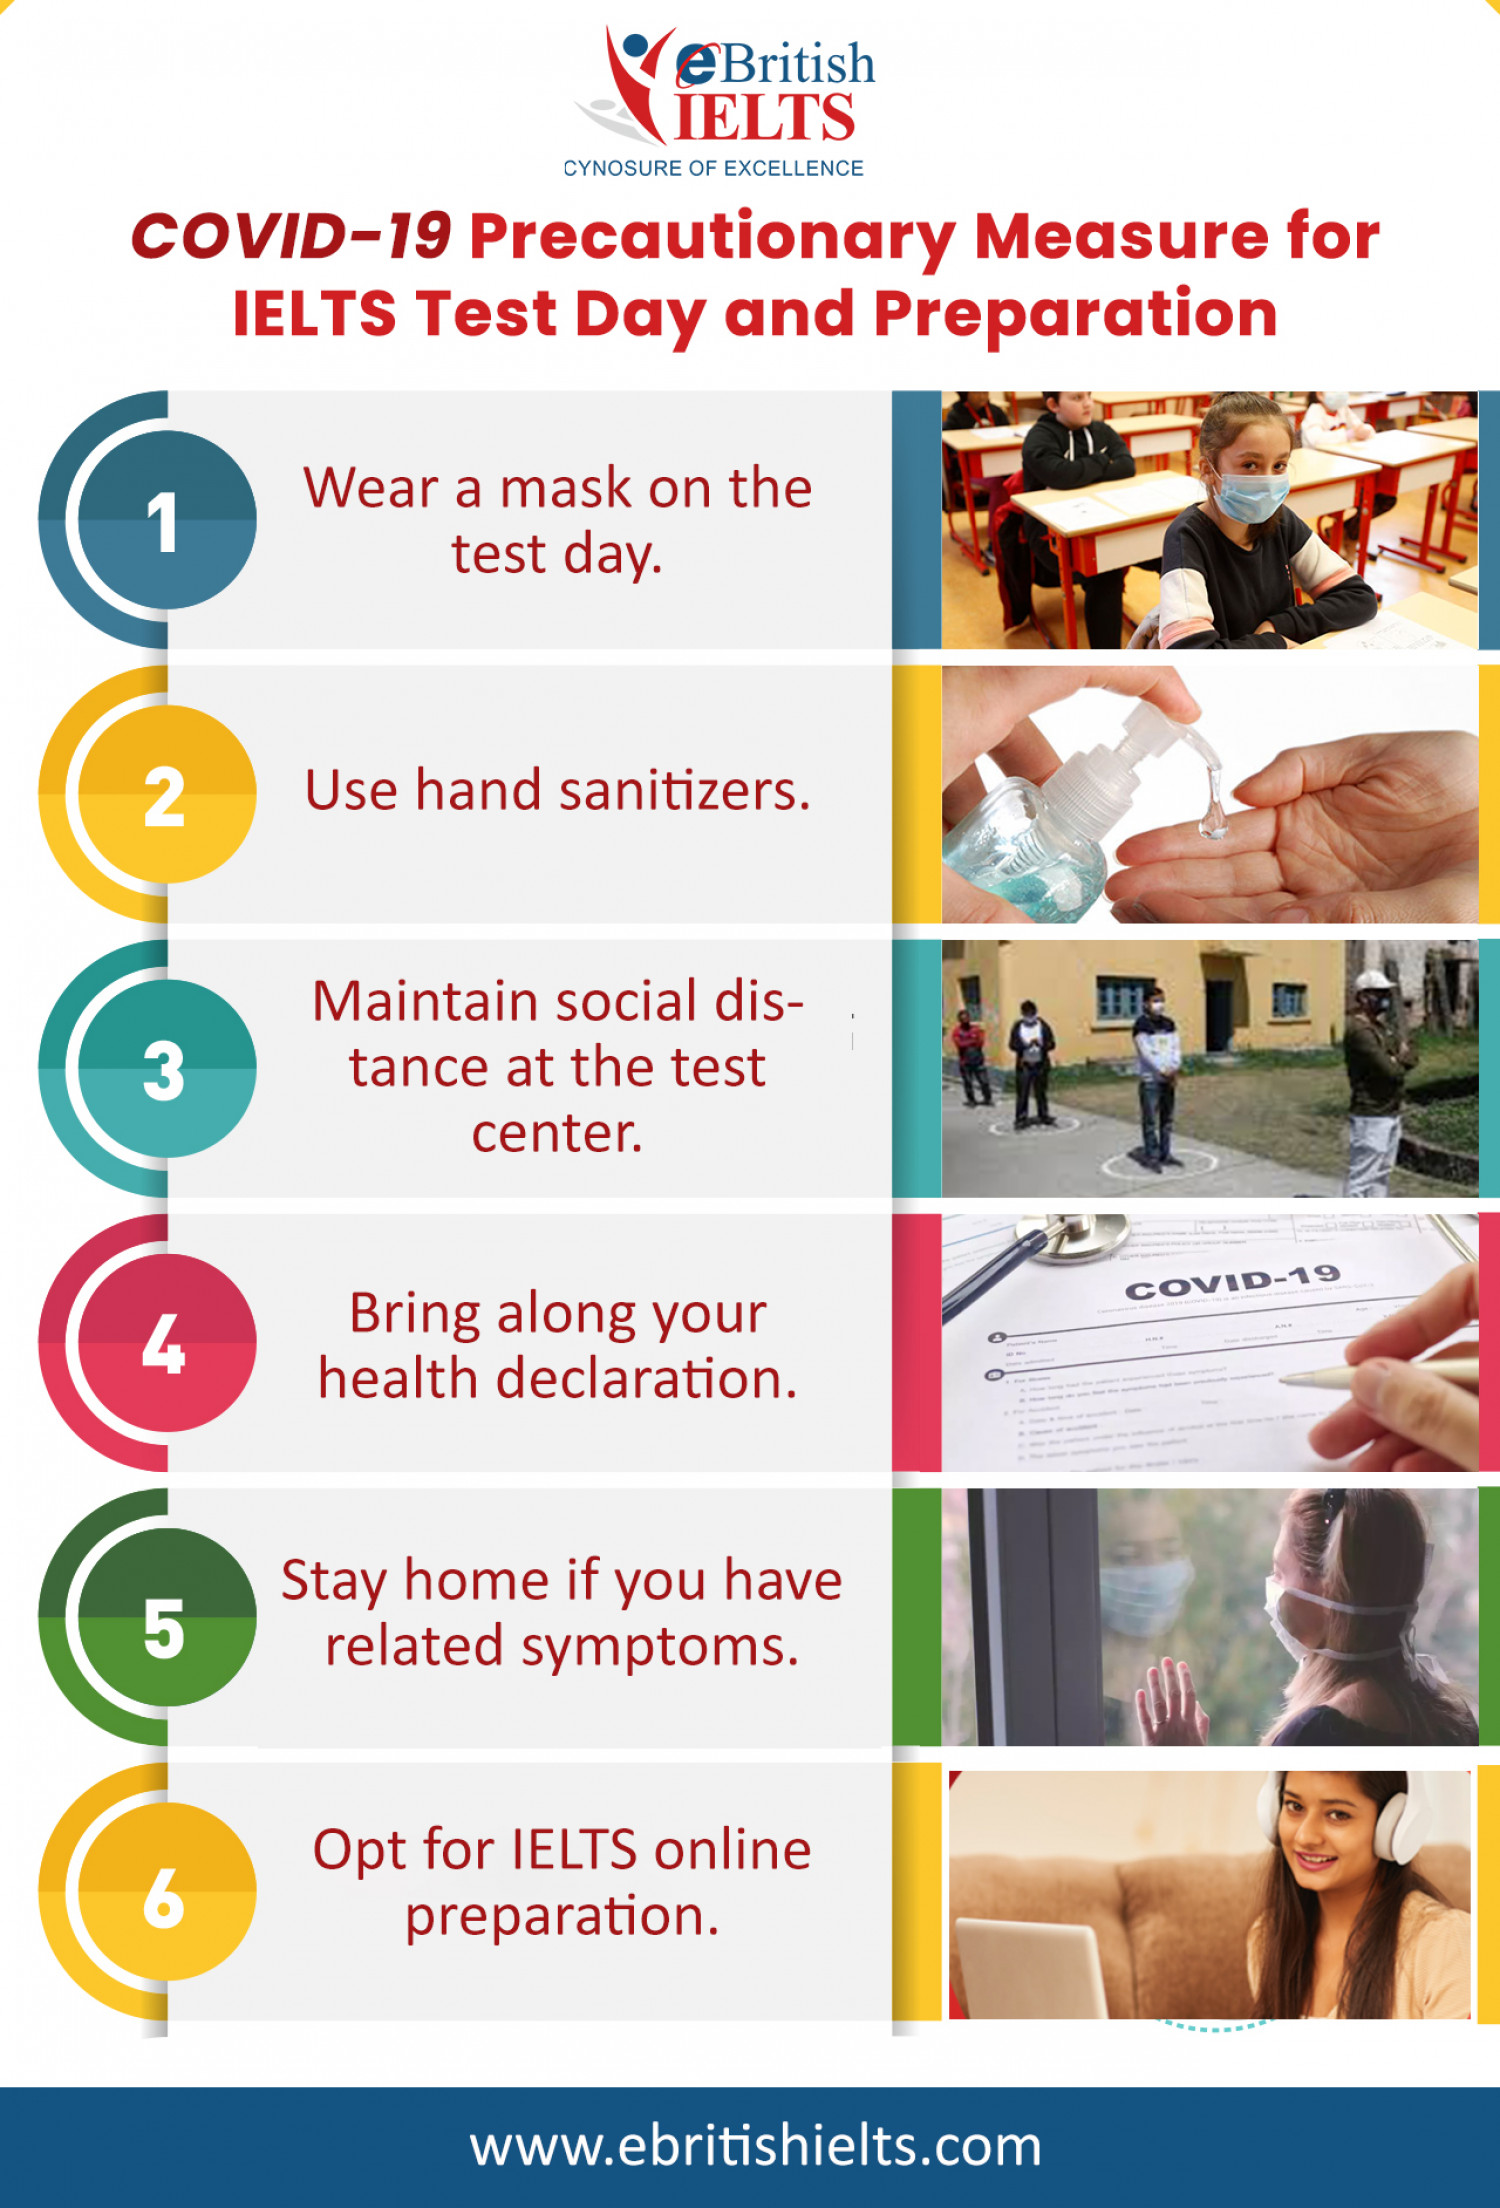 IELTS Test Day and Preparation: COVID-19 Updates Infographic